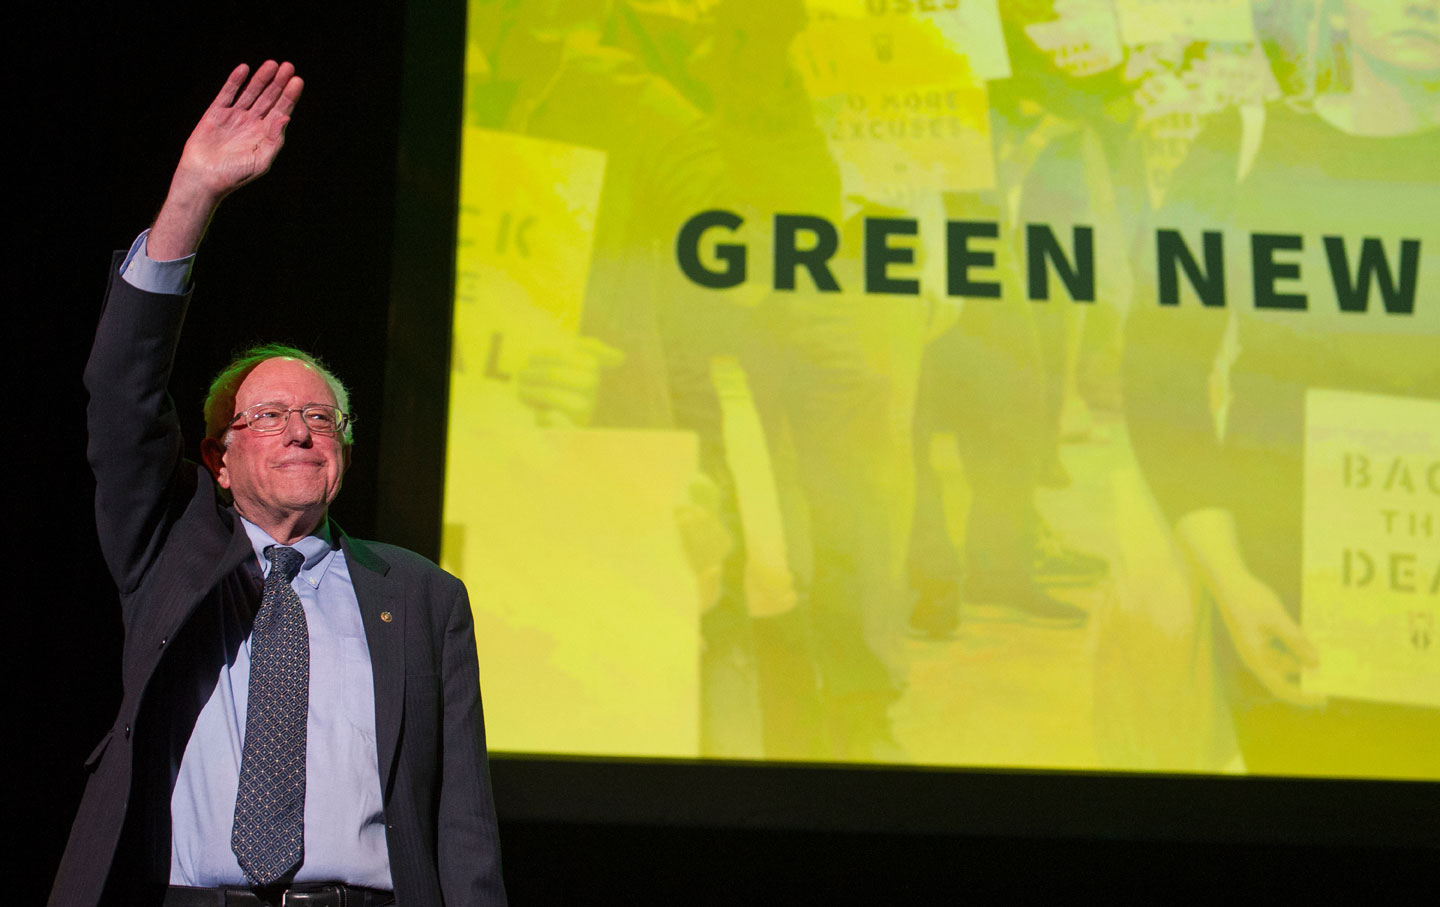 Only a Global Green New Deal Can Save the Planet